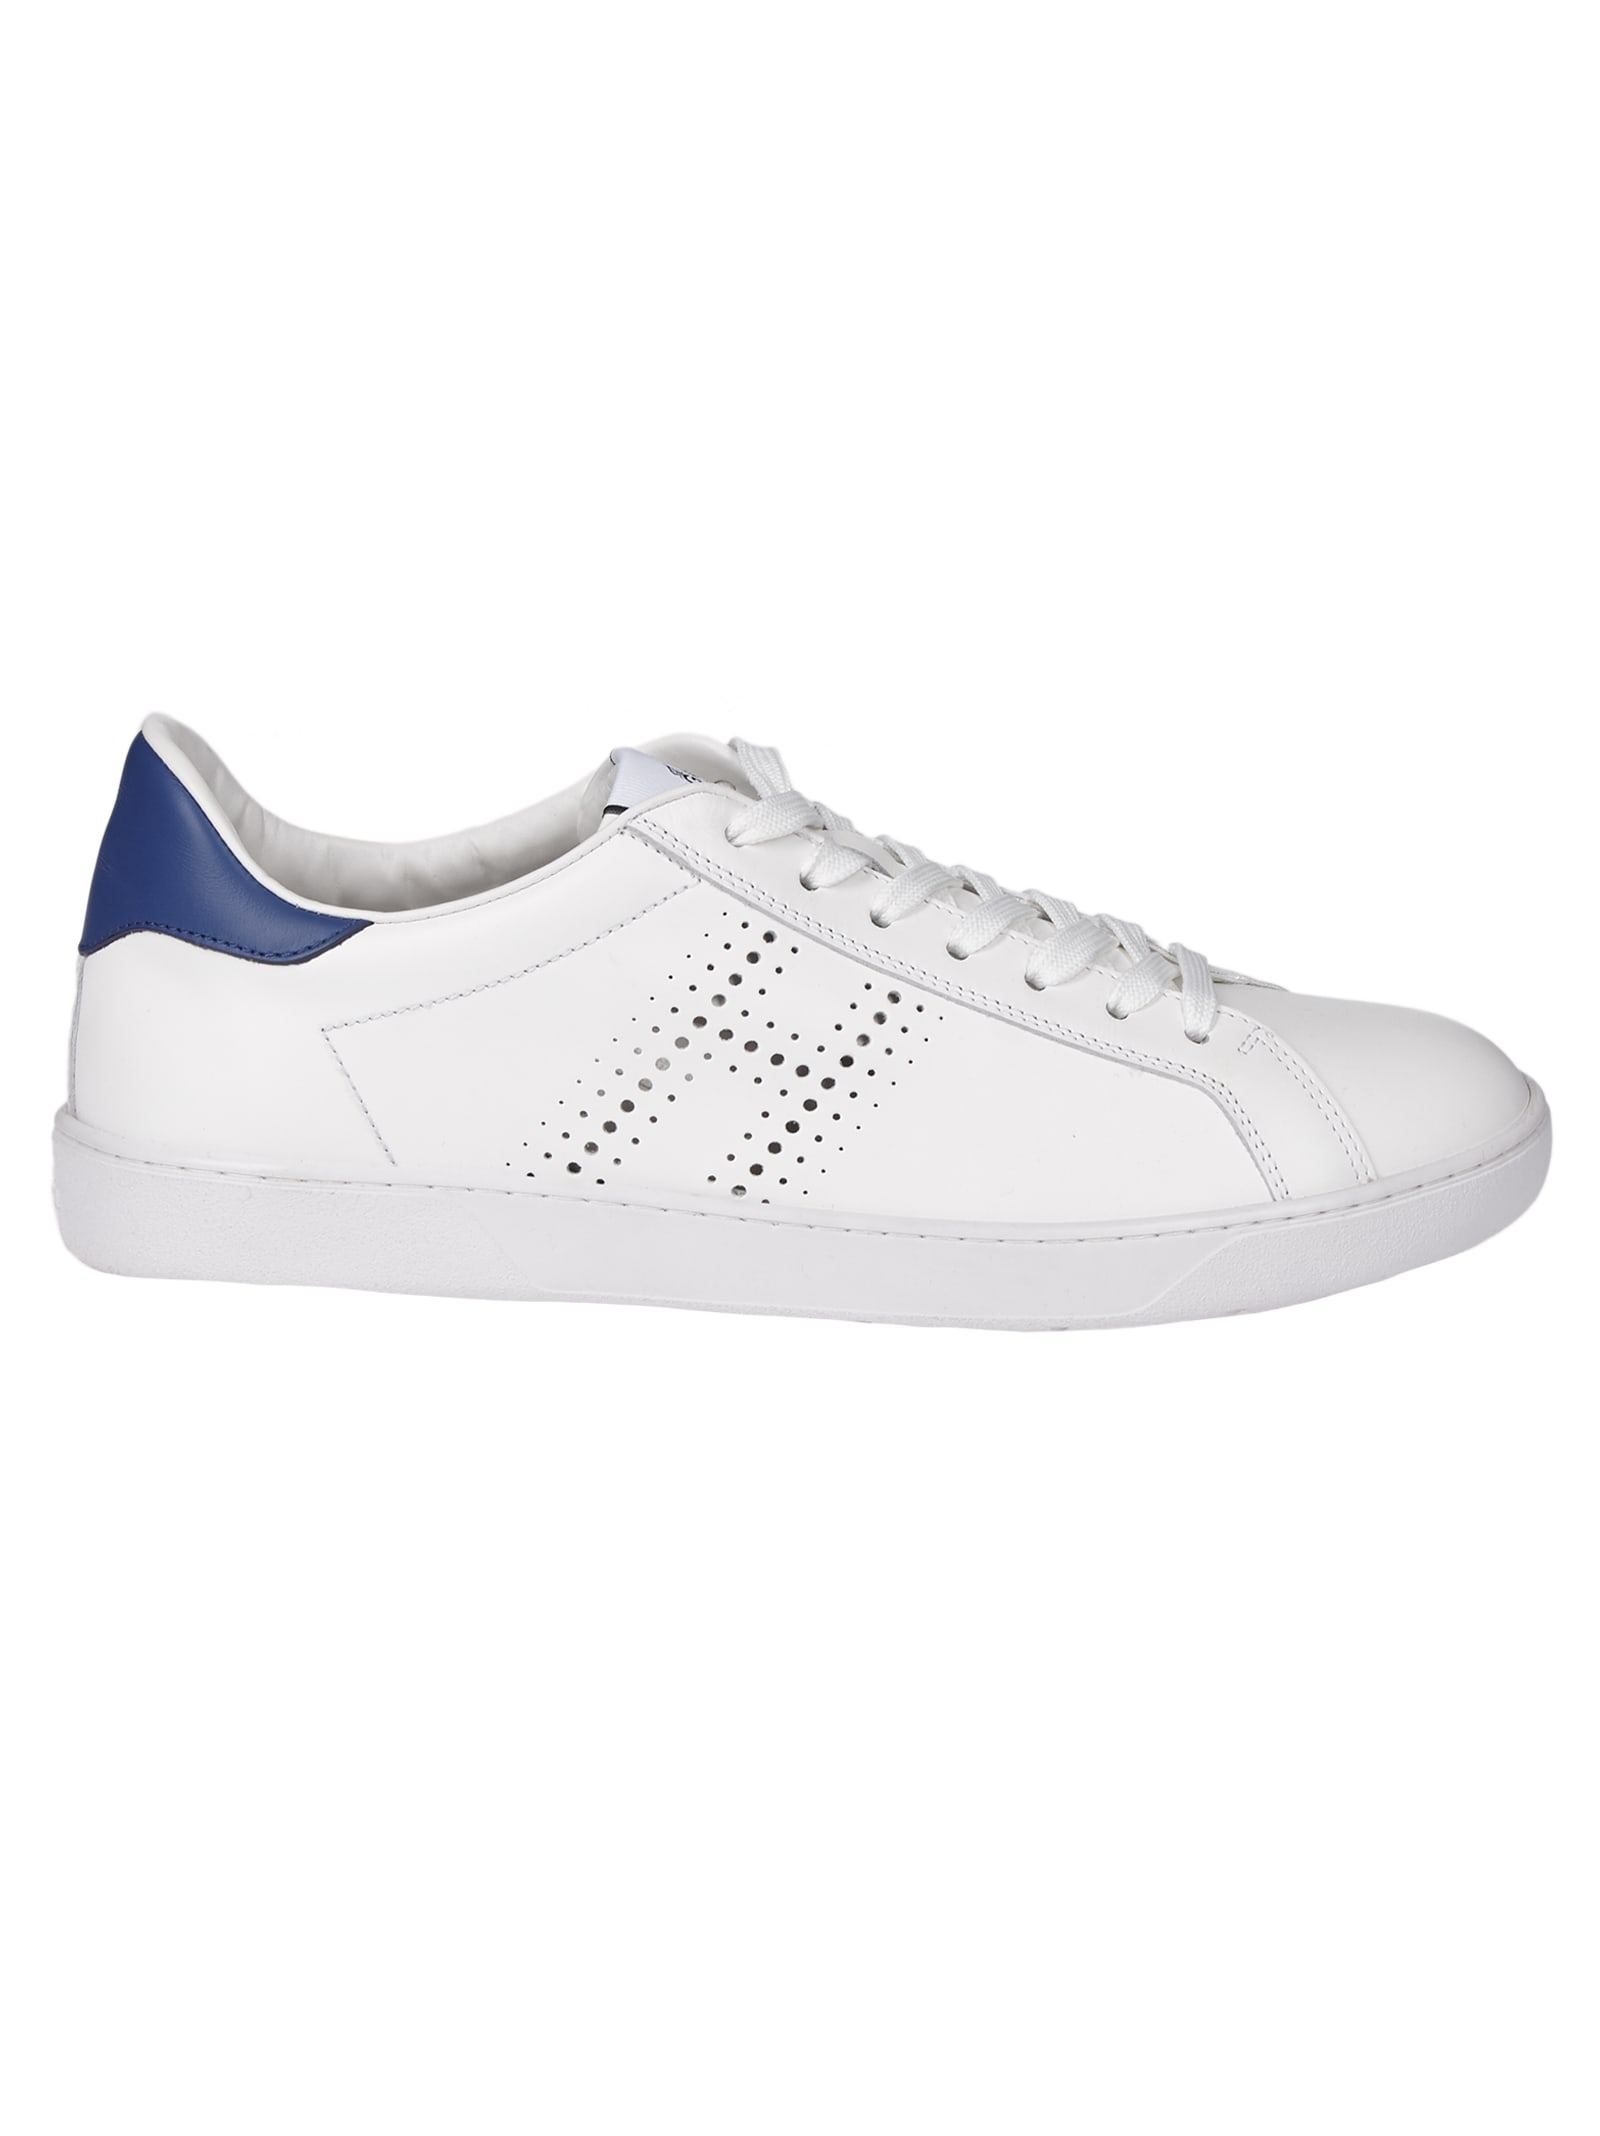 Purchase > hogan h327, Up to 75% OFF